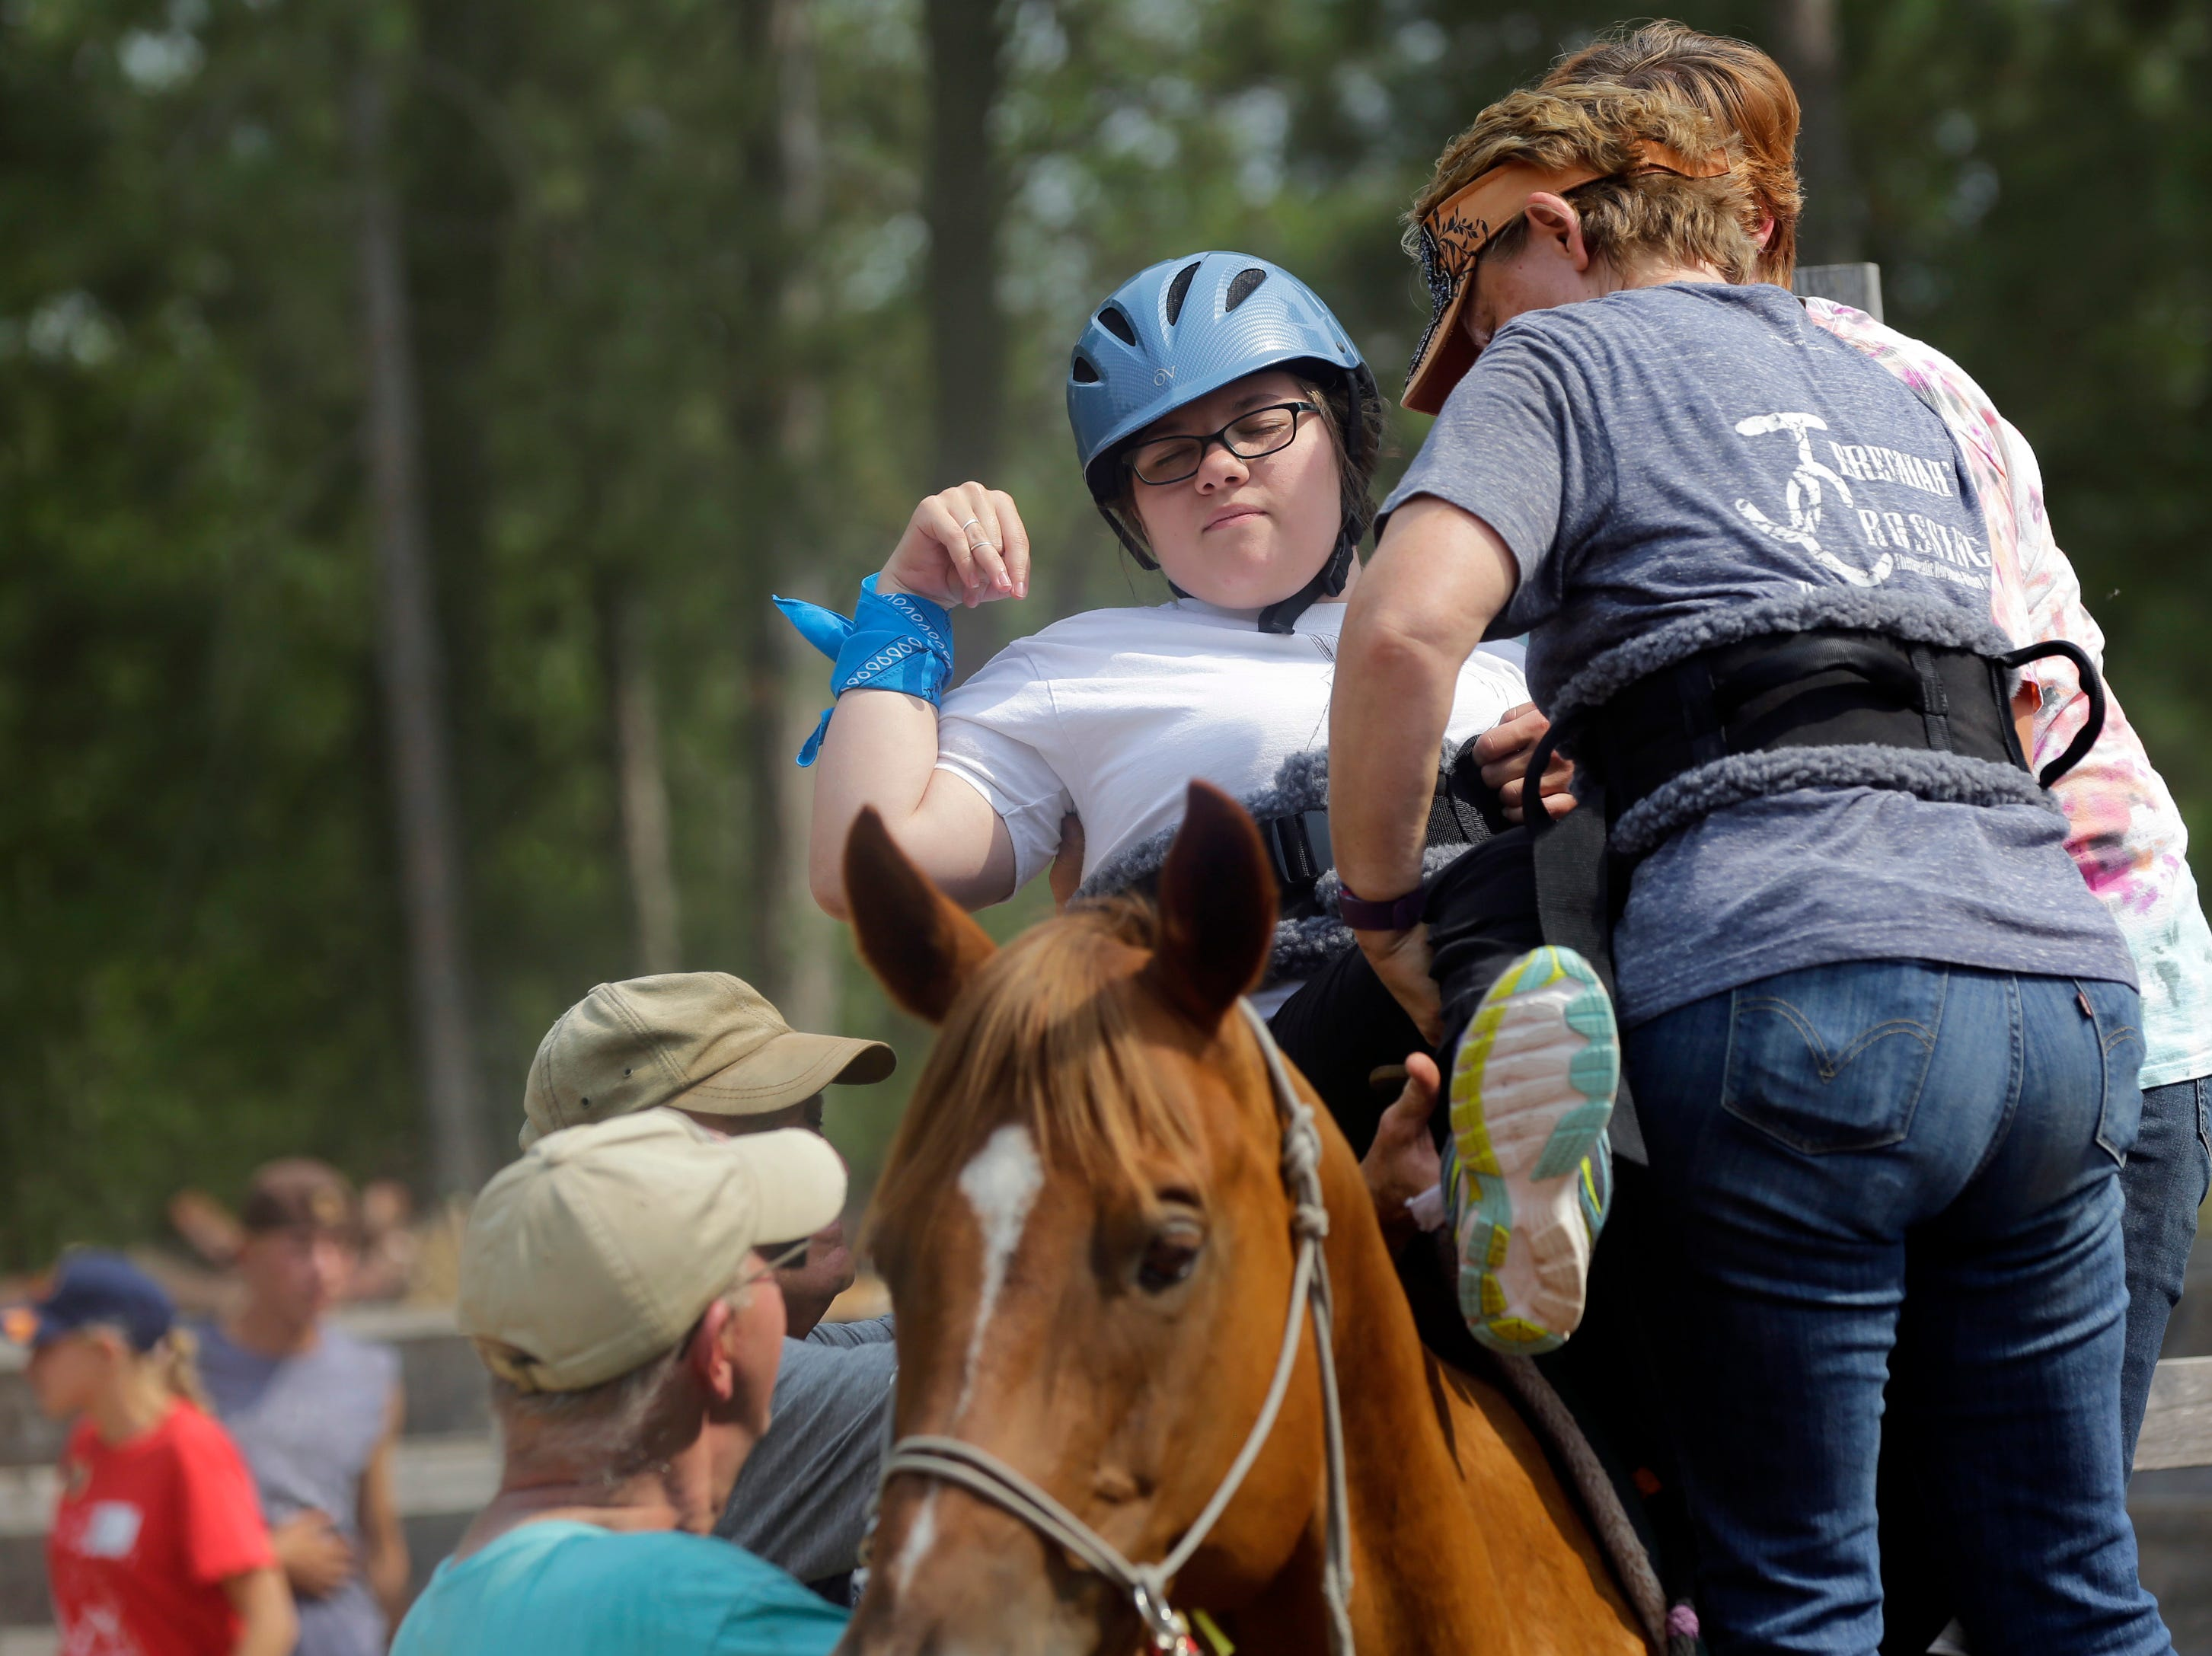 Scedra Stoffel is helped onto Alan the horse by Kathleen Harris and three volunteers during the Jeremiah's Crossing ride-a-thon event Sunday, August 19, 2018 in Babcock, Wis.